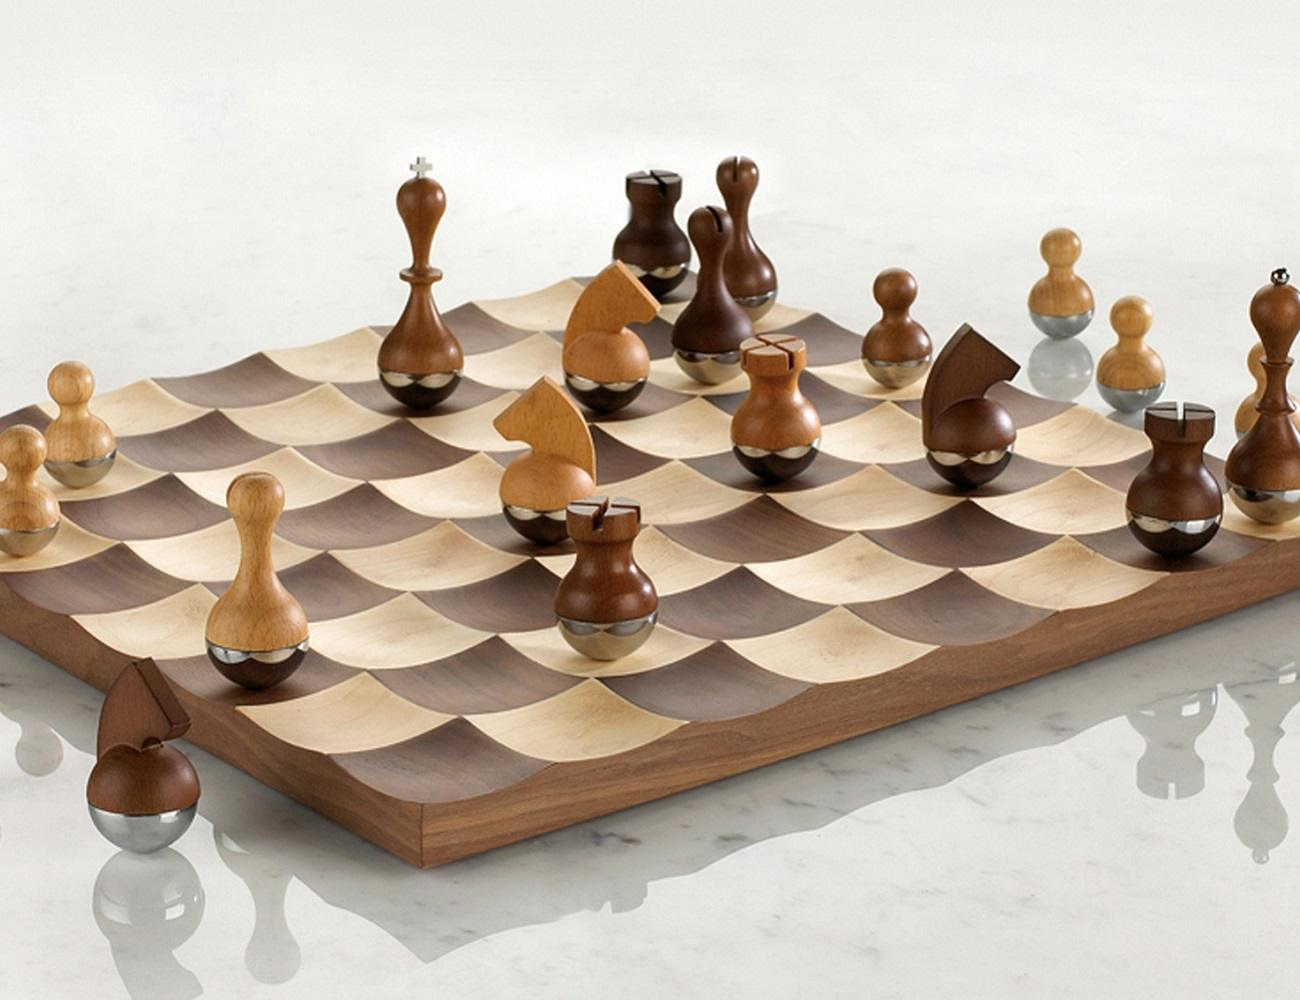 Wobble+Chess+Set+By+Umbra